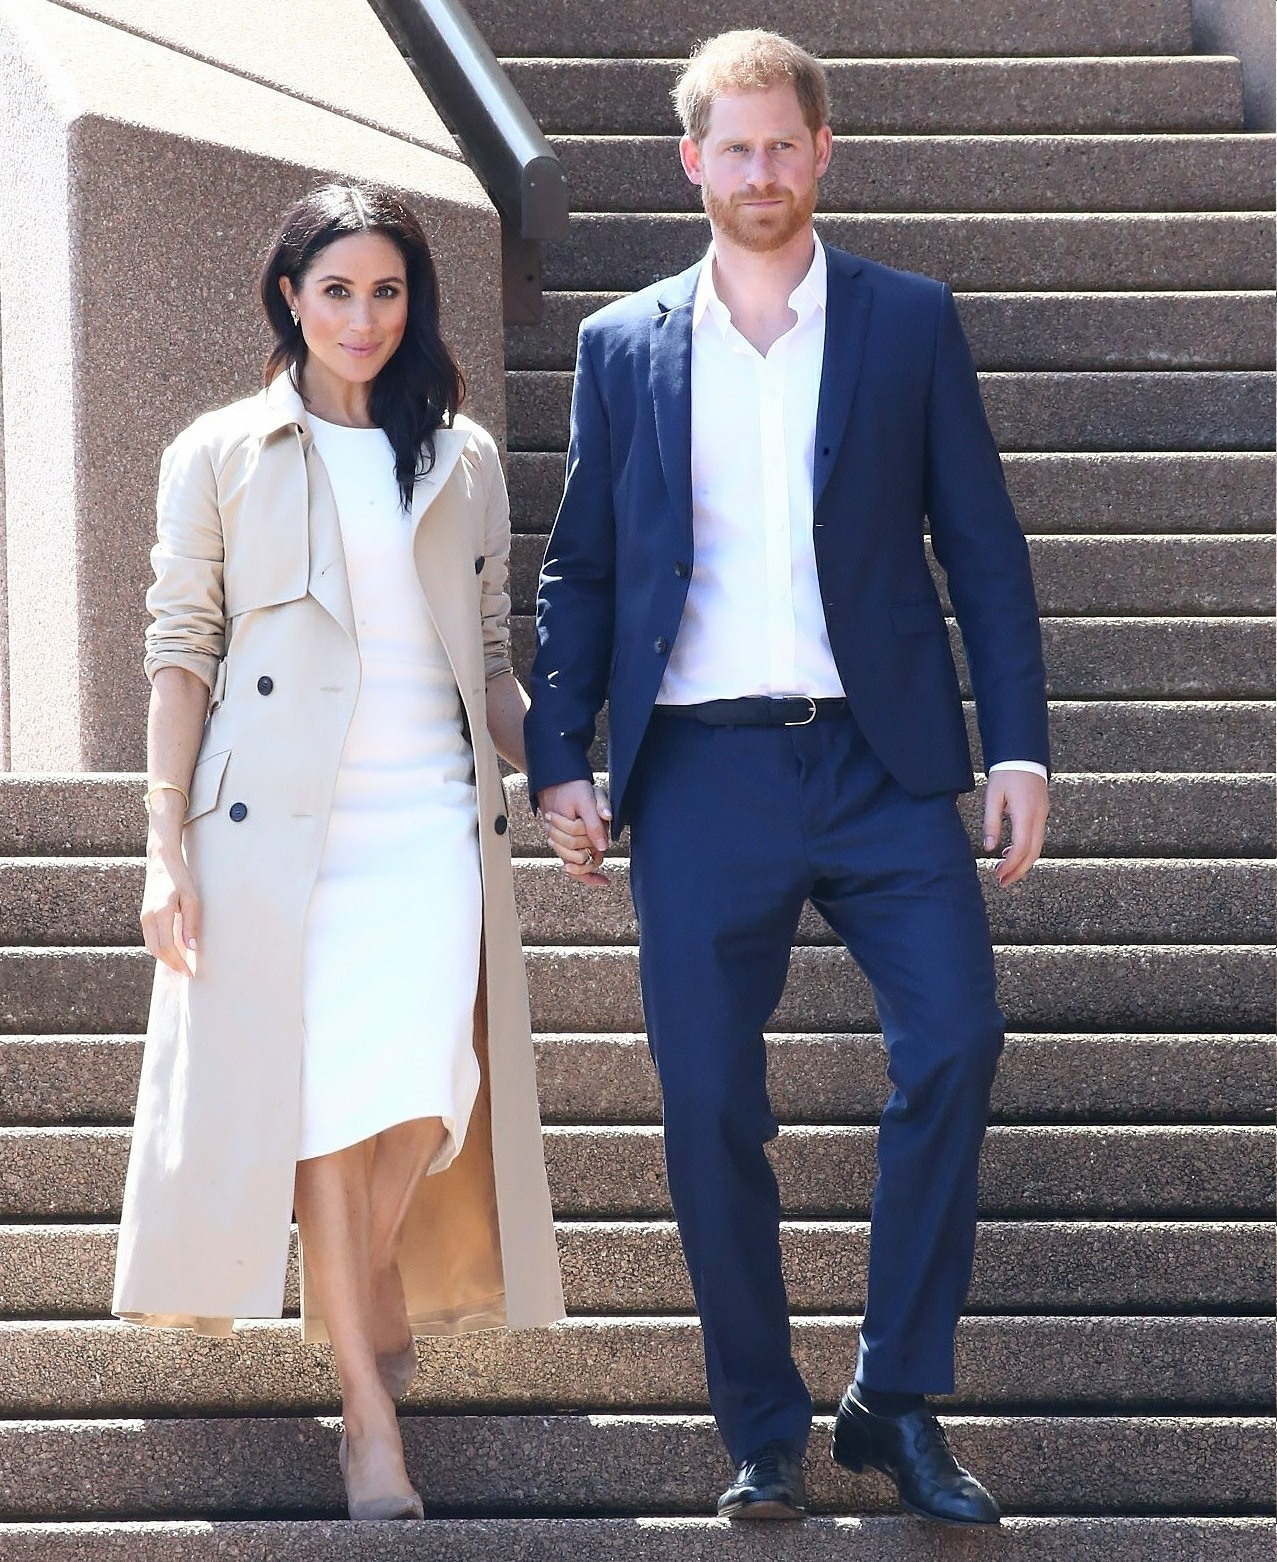 The royal family worries that the Sussexes rushed into 'the shark-tank of Hollywood'